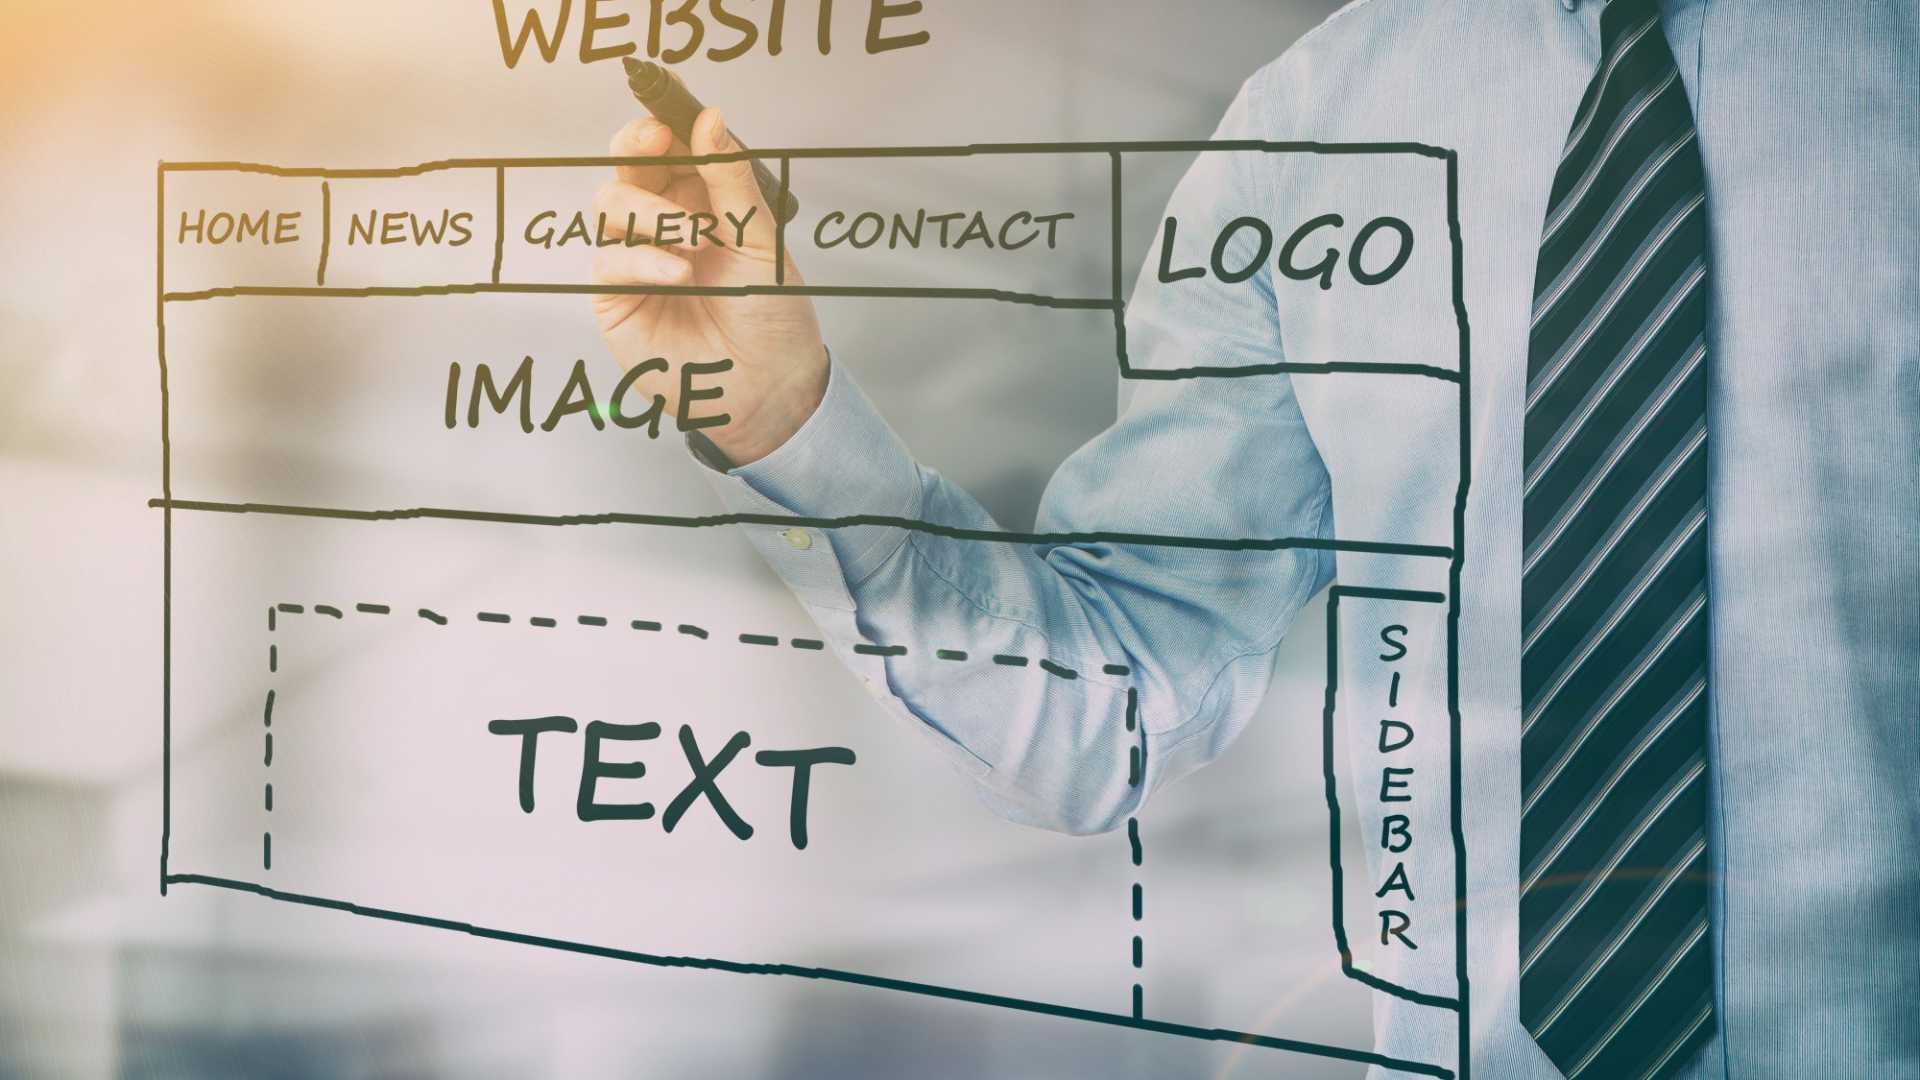 How to Make Your Customers Find and Remember Your Website